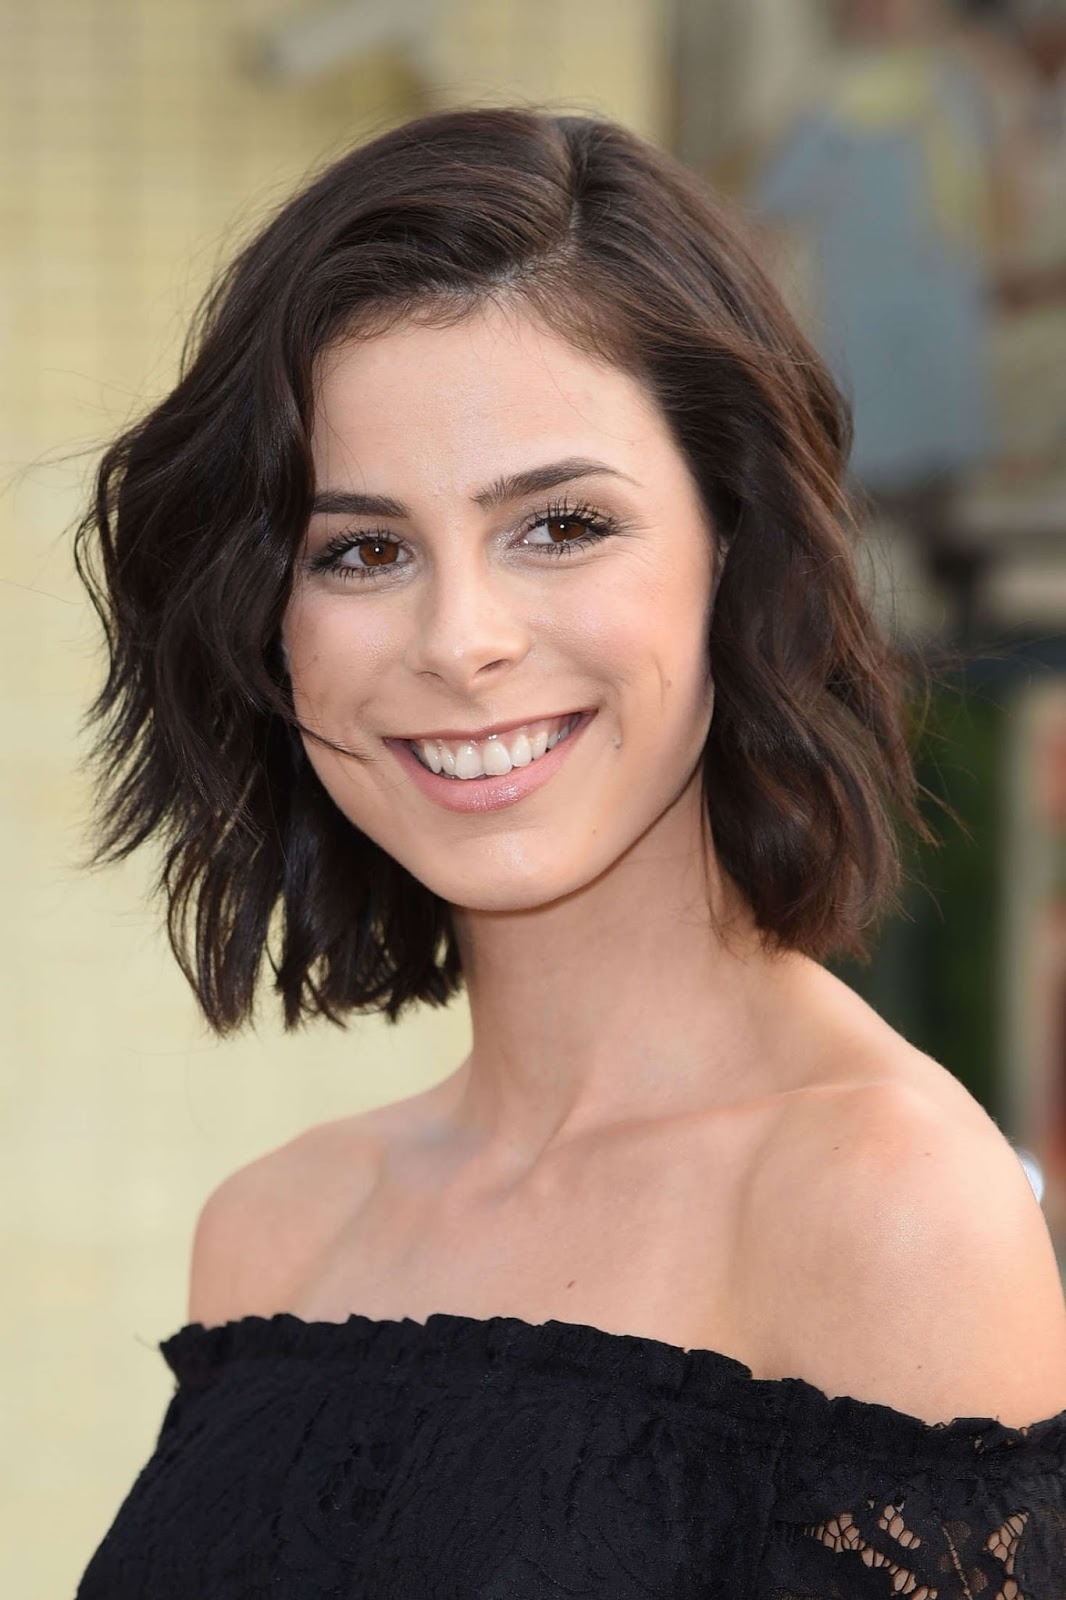 Lena Meyer-Landrut nudes (37 foto), fotos Tits, YouTube, swimsuit 2018